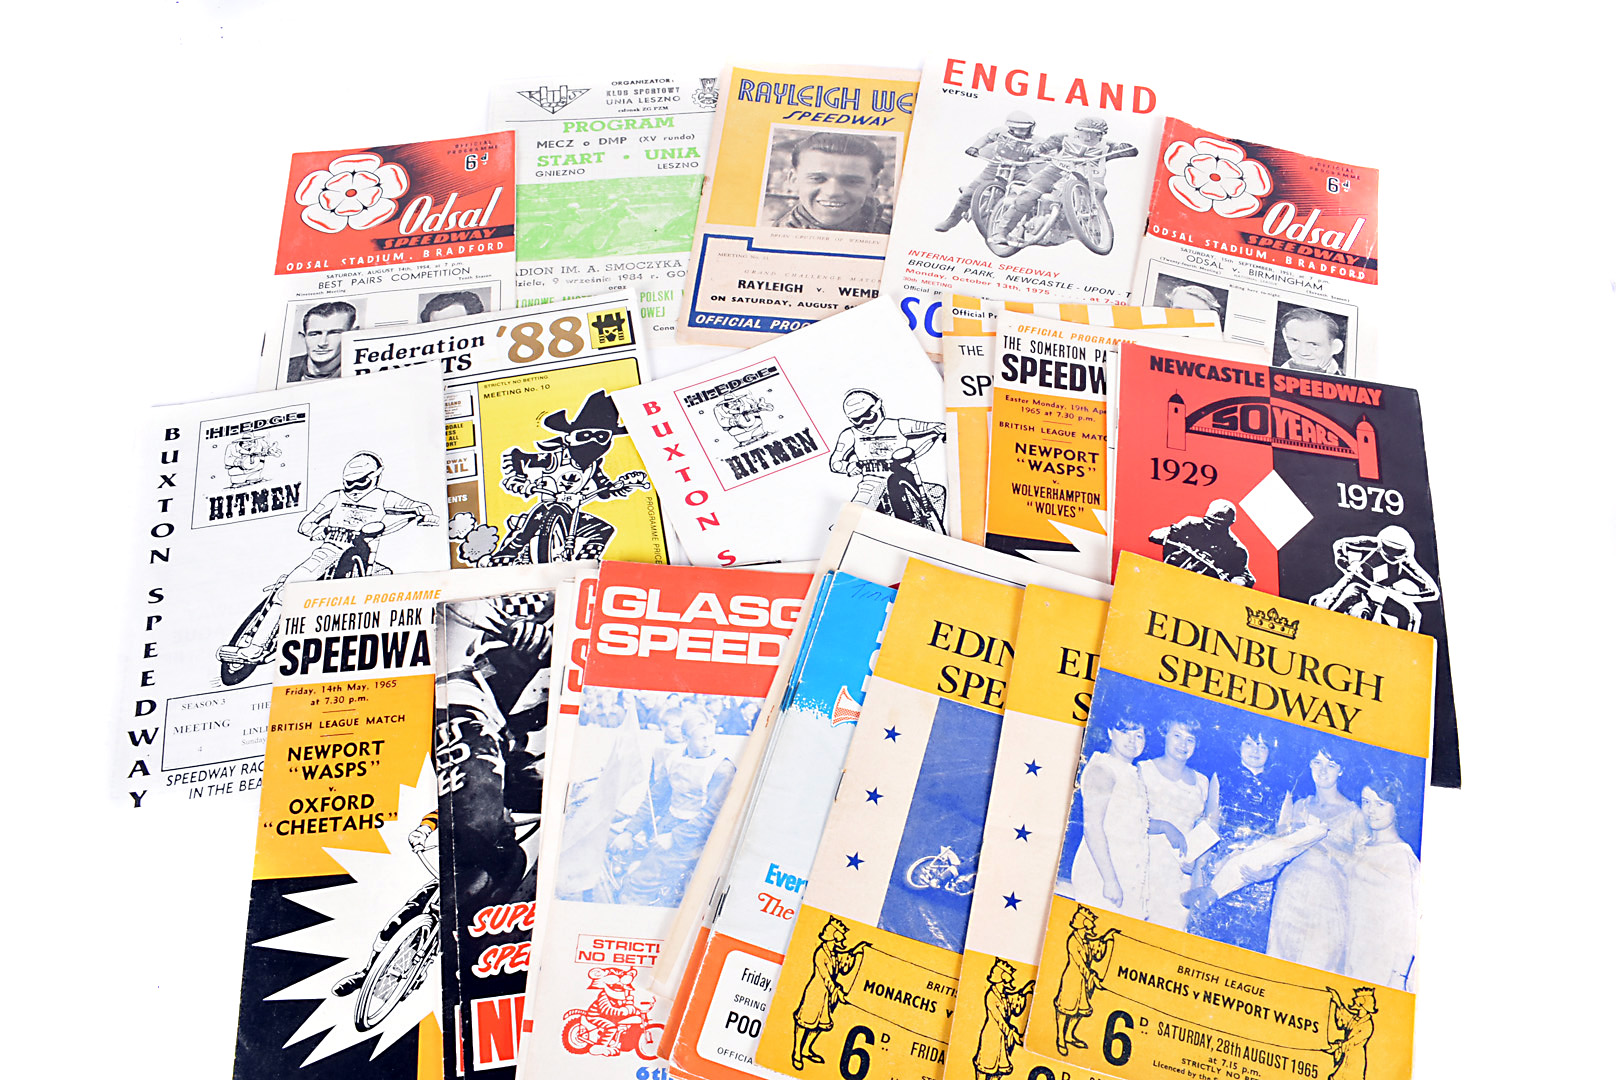 Football Programmes, ten football programmes from games played at Chelsea FC in 1950s includes